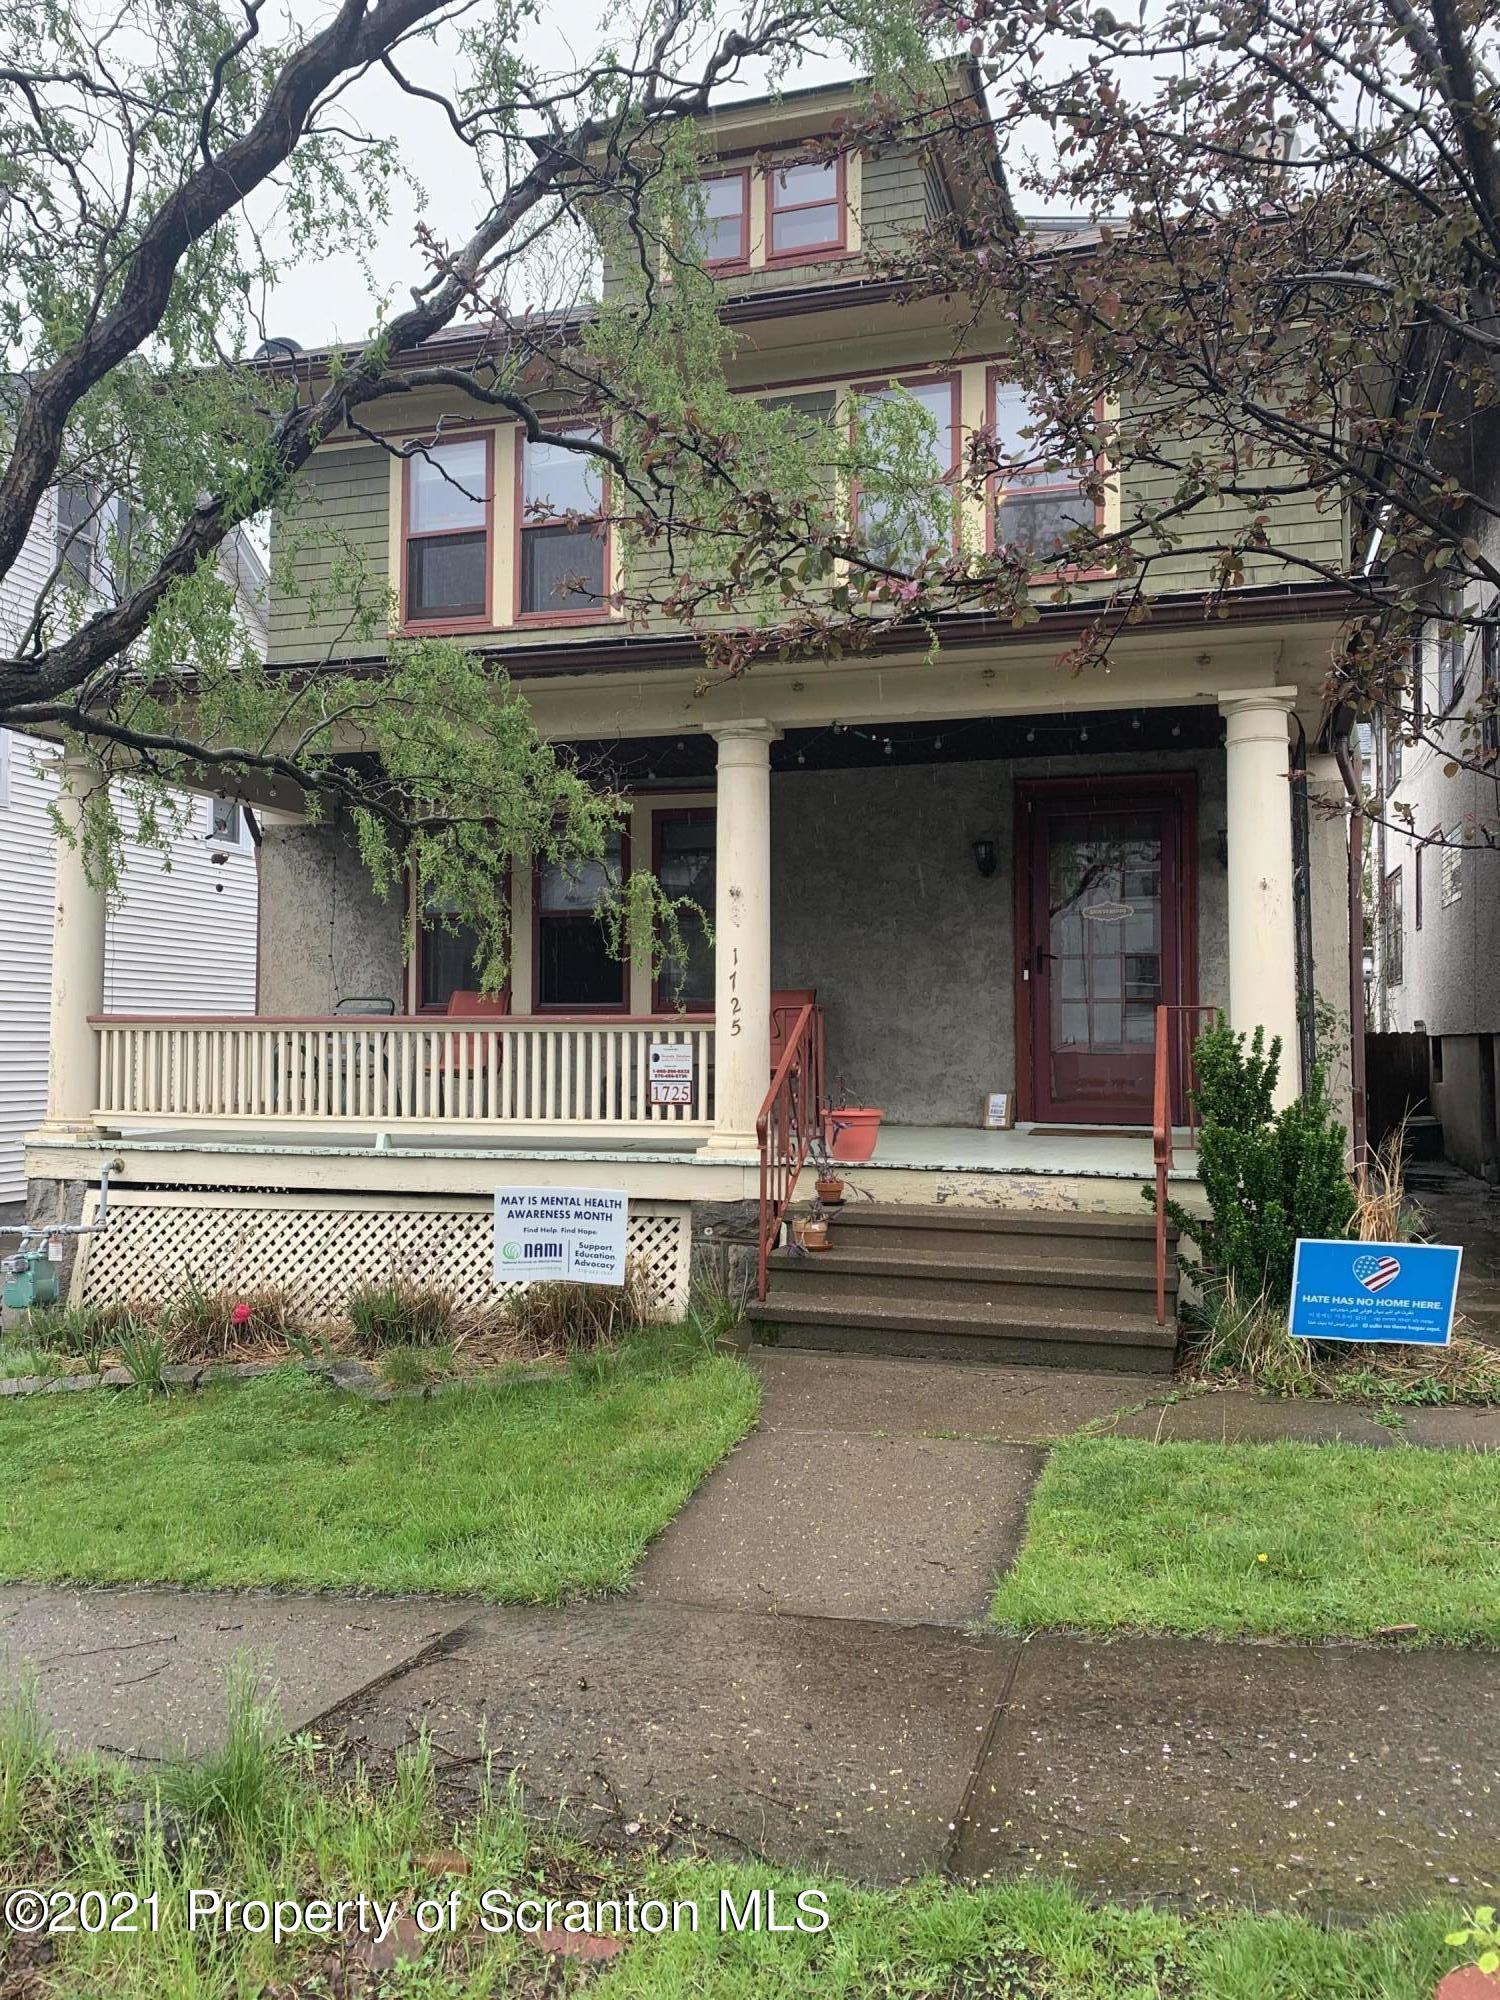 1725 Olive St, Scranton, Pennsylvania 18510, 3 Bedrooms Bedrooms, 6 Rooms Rooms,1 BathroomBathrooms,Single Family,For Sale,Olive,21-1675